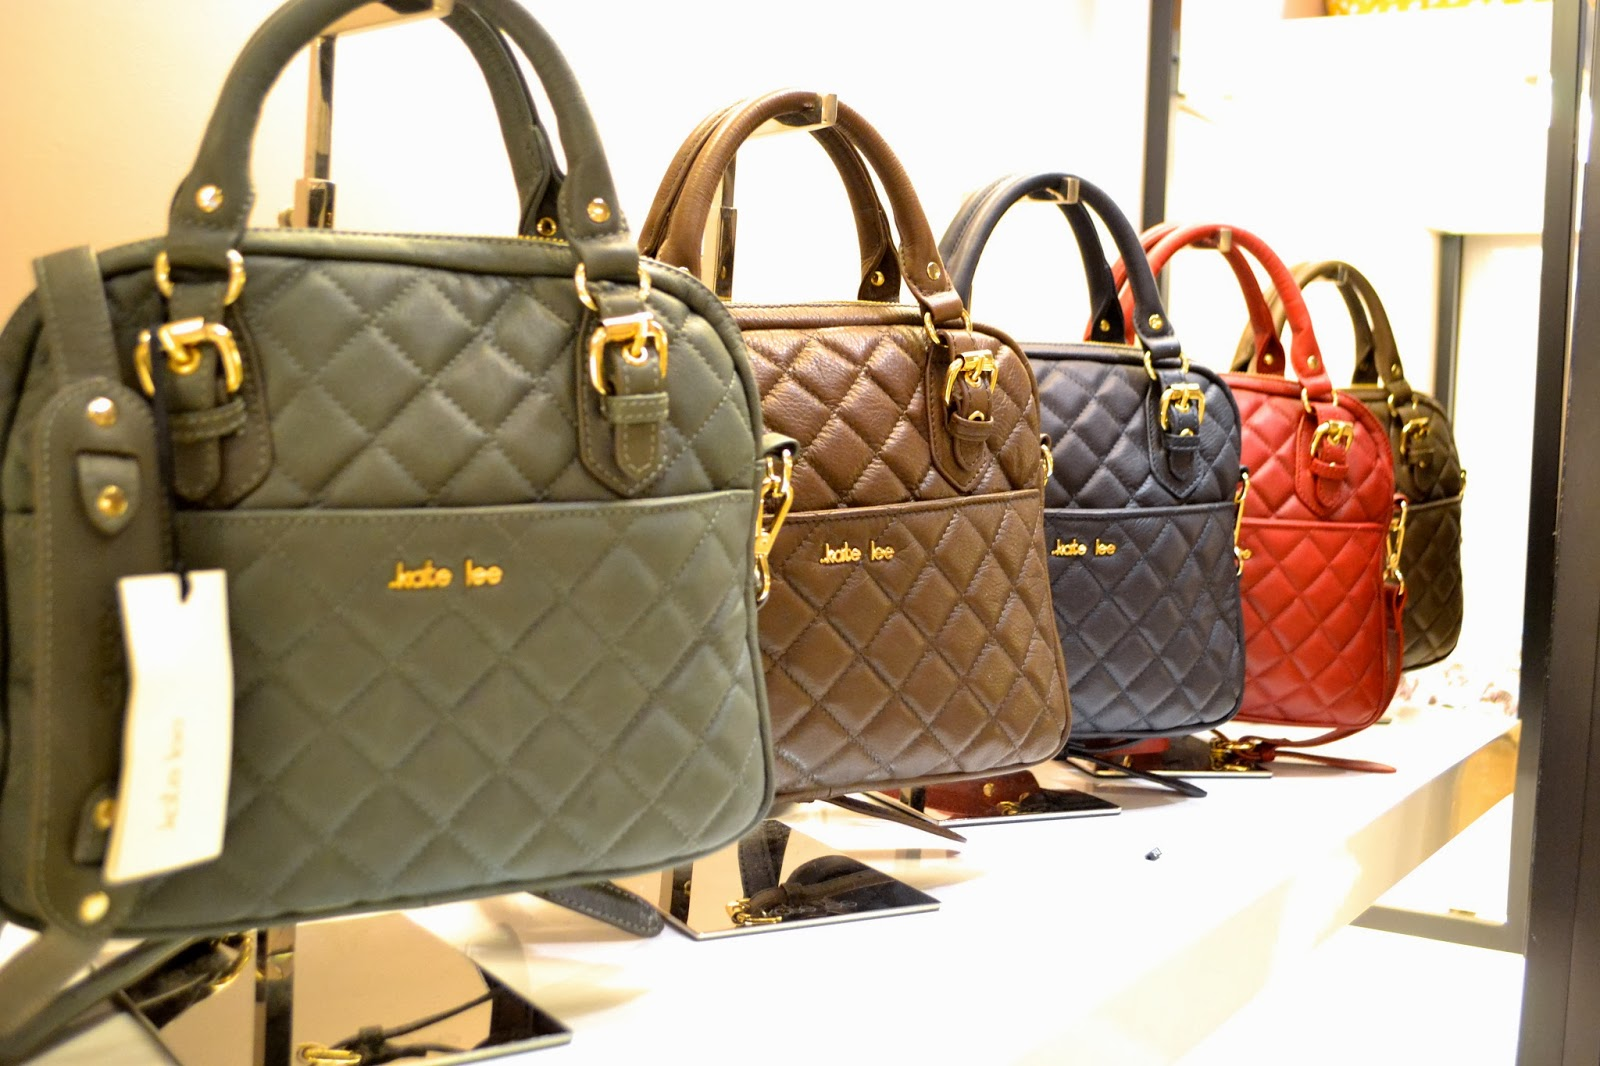 Kate Lee Handbags